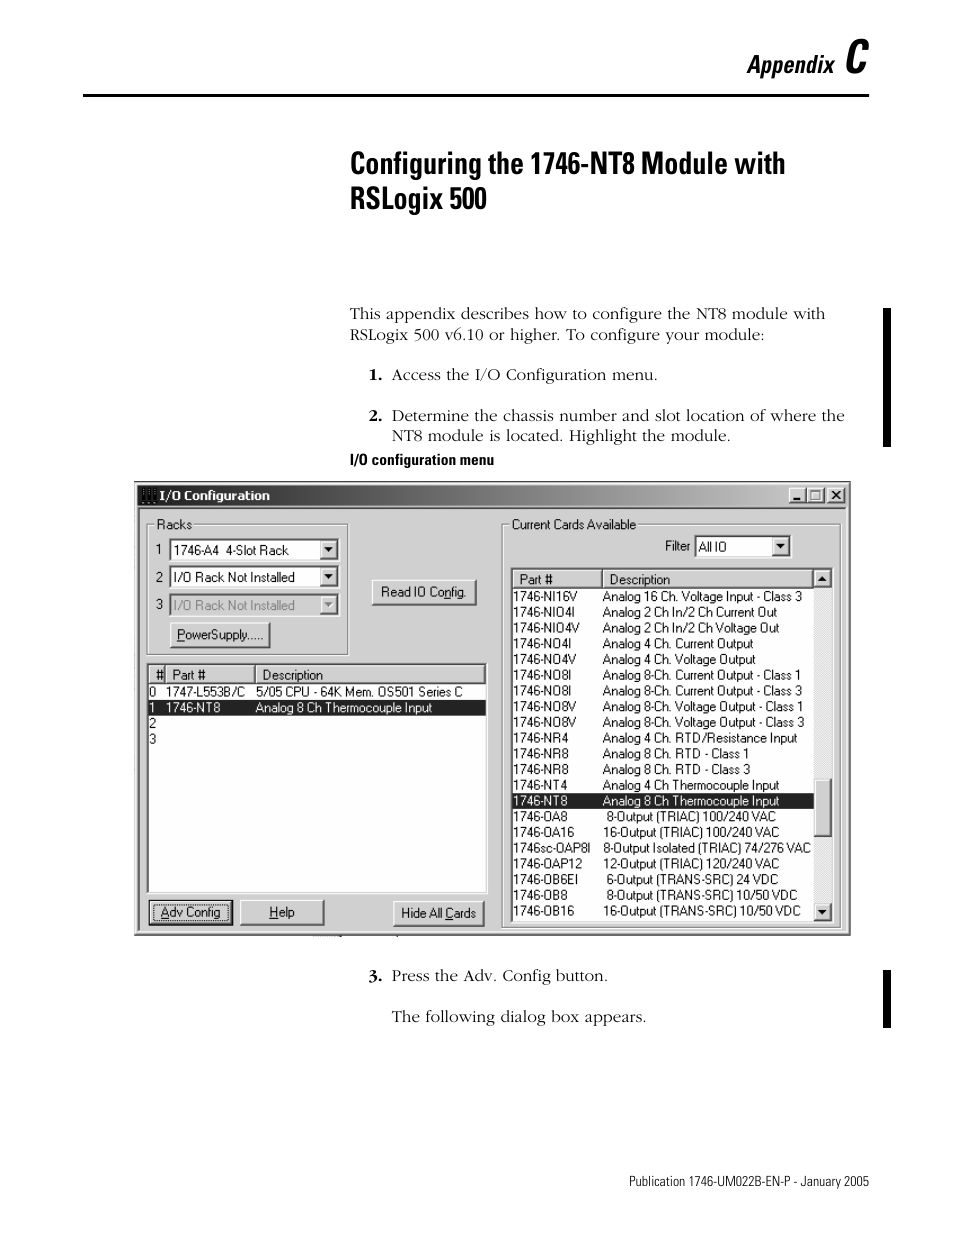 Configuring the 1746-nt8 module with rslogix 500, Appendix